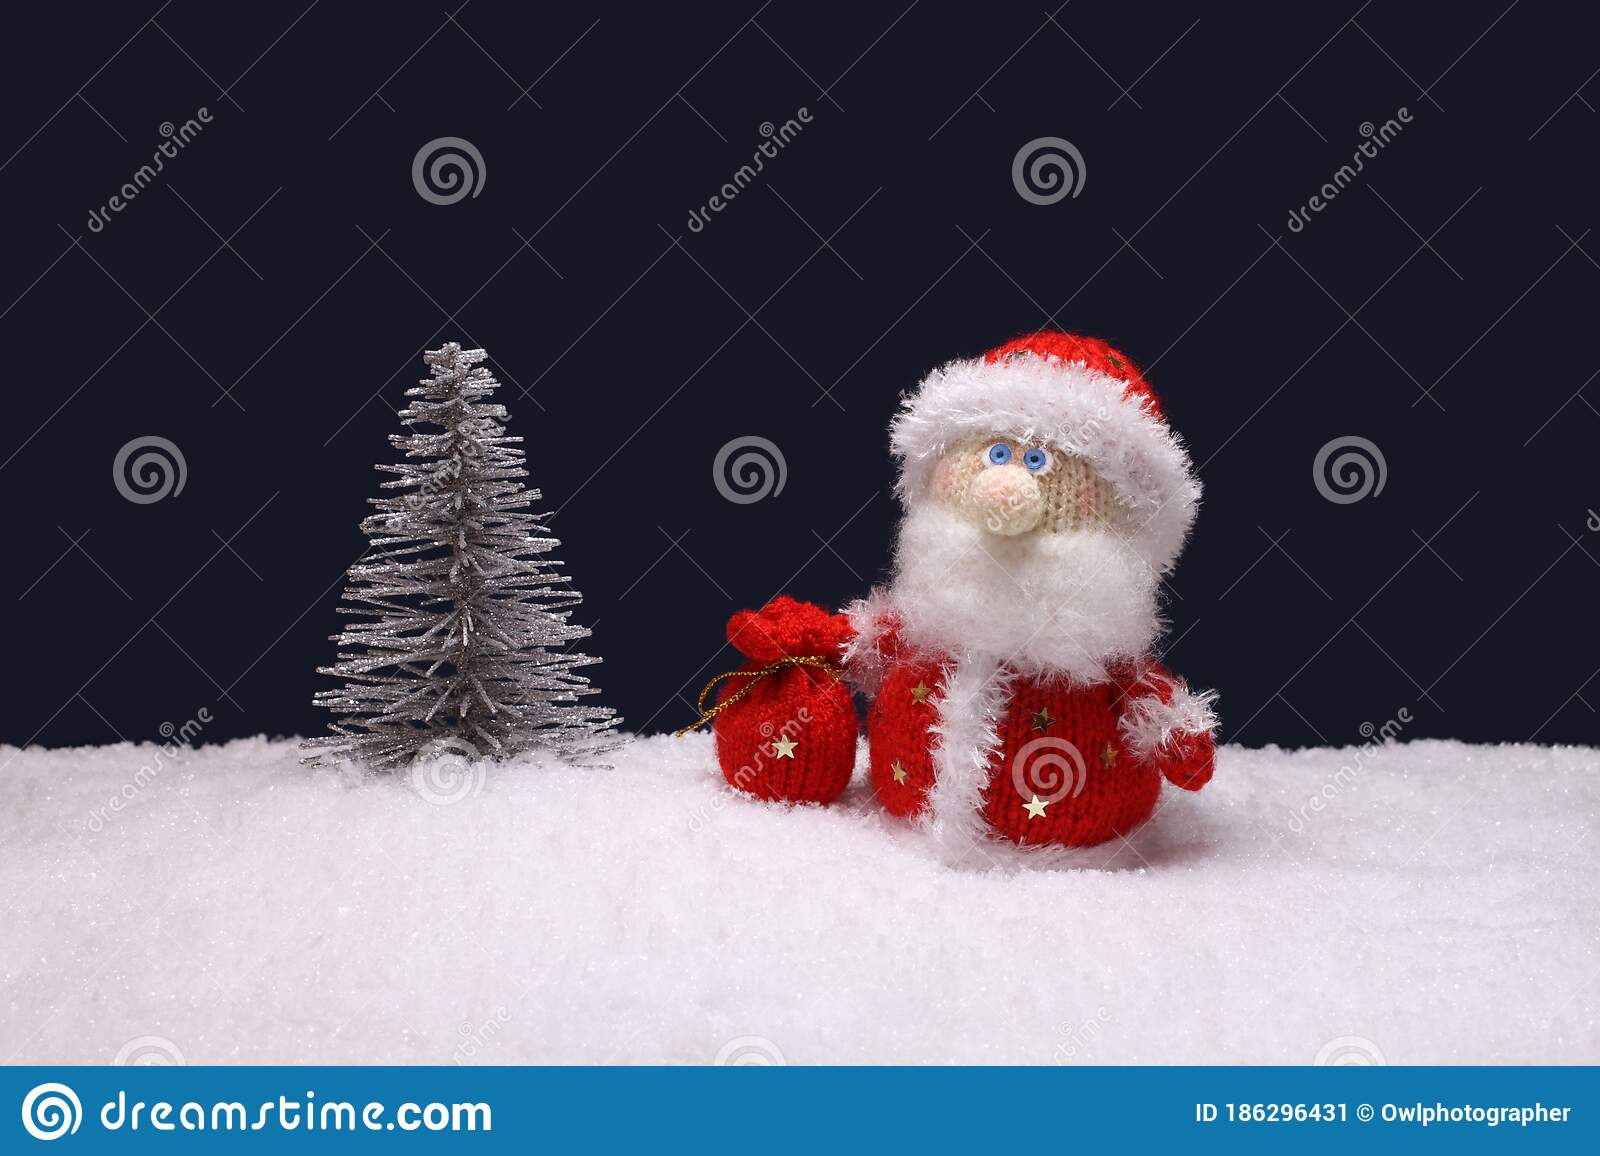 Toy Santa Claus Is Standing Next To A Toy Silver Christmas Tree On Artificial White Snow Against Navy Blue Background Stock Image Image Of Greeting Claus 186296431